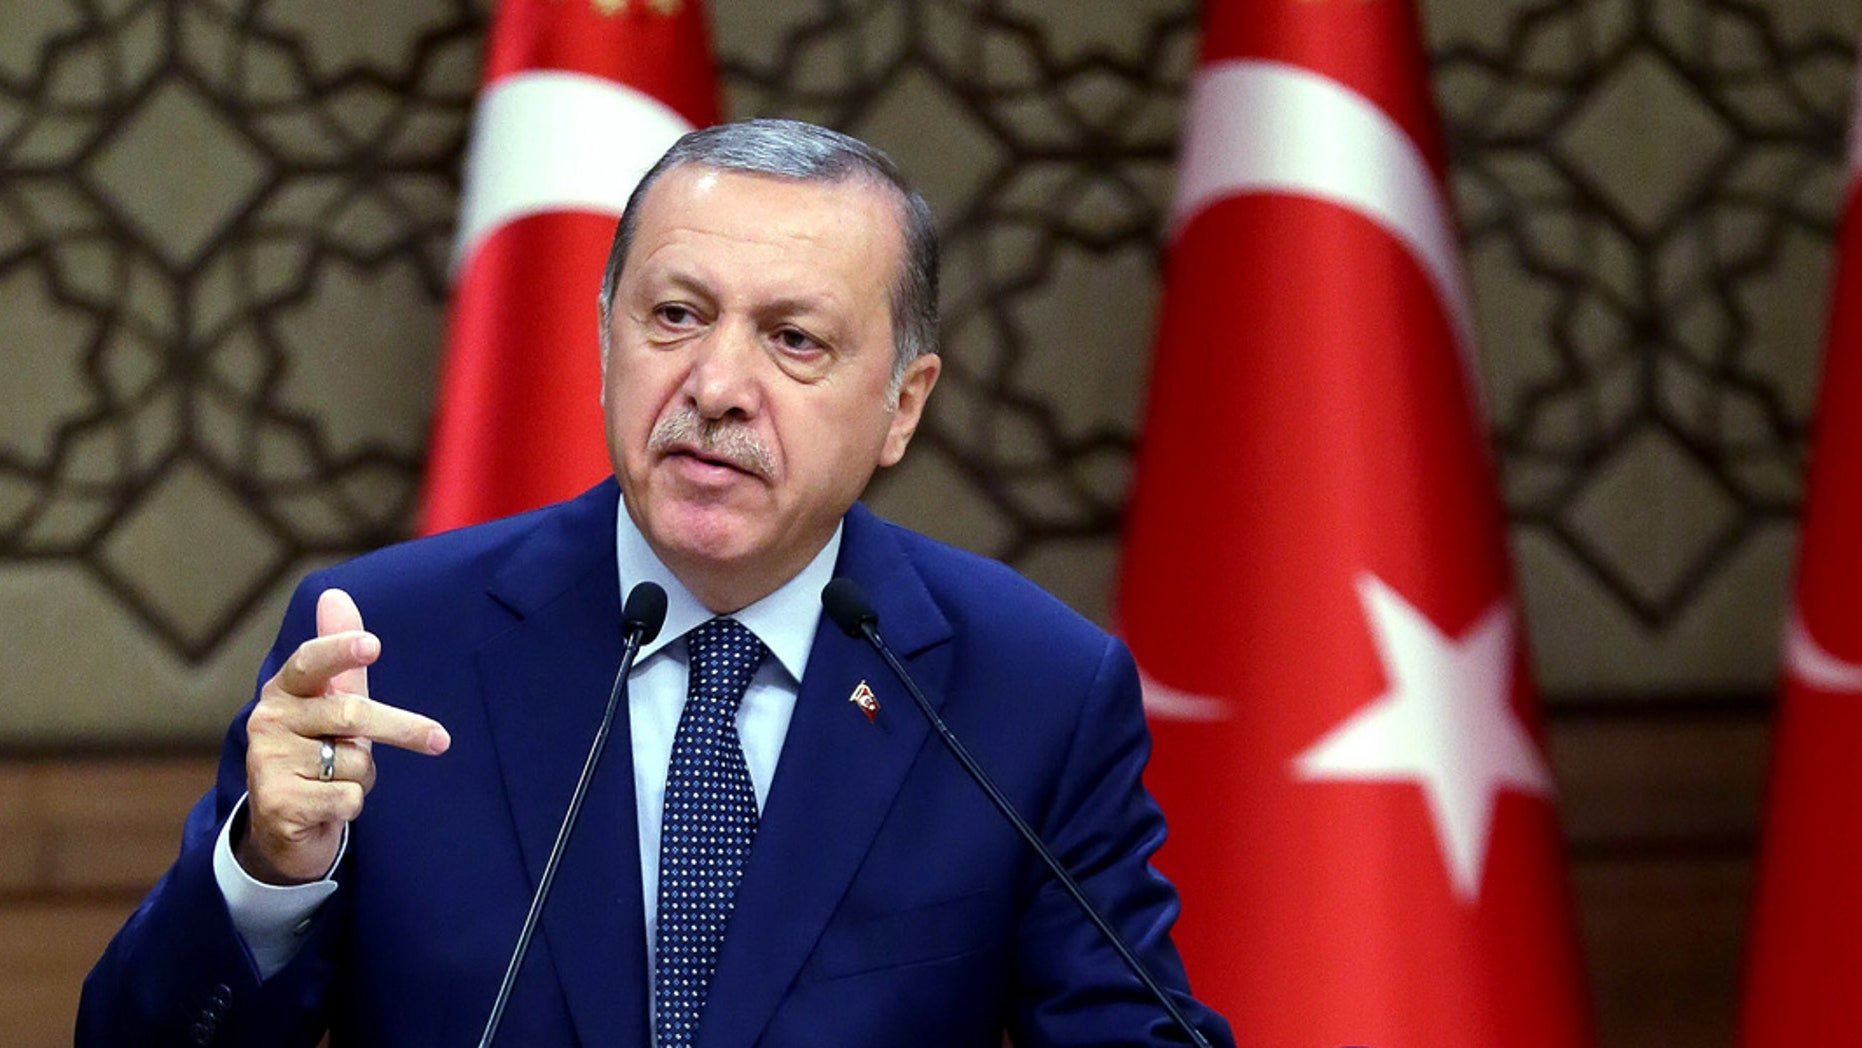 Erdogan is targeting both ISIS and the Kurds.